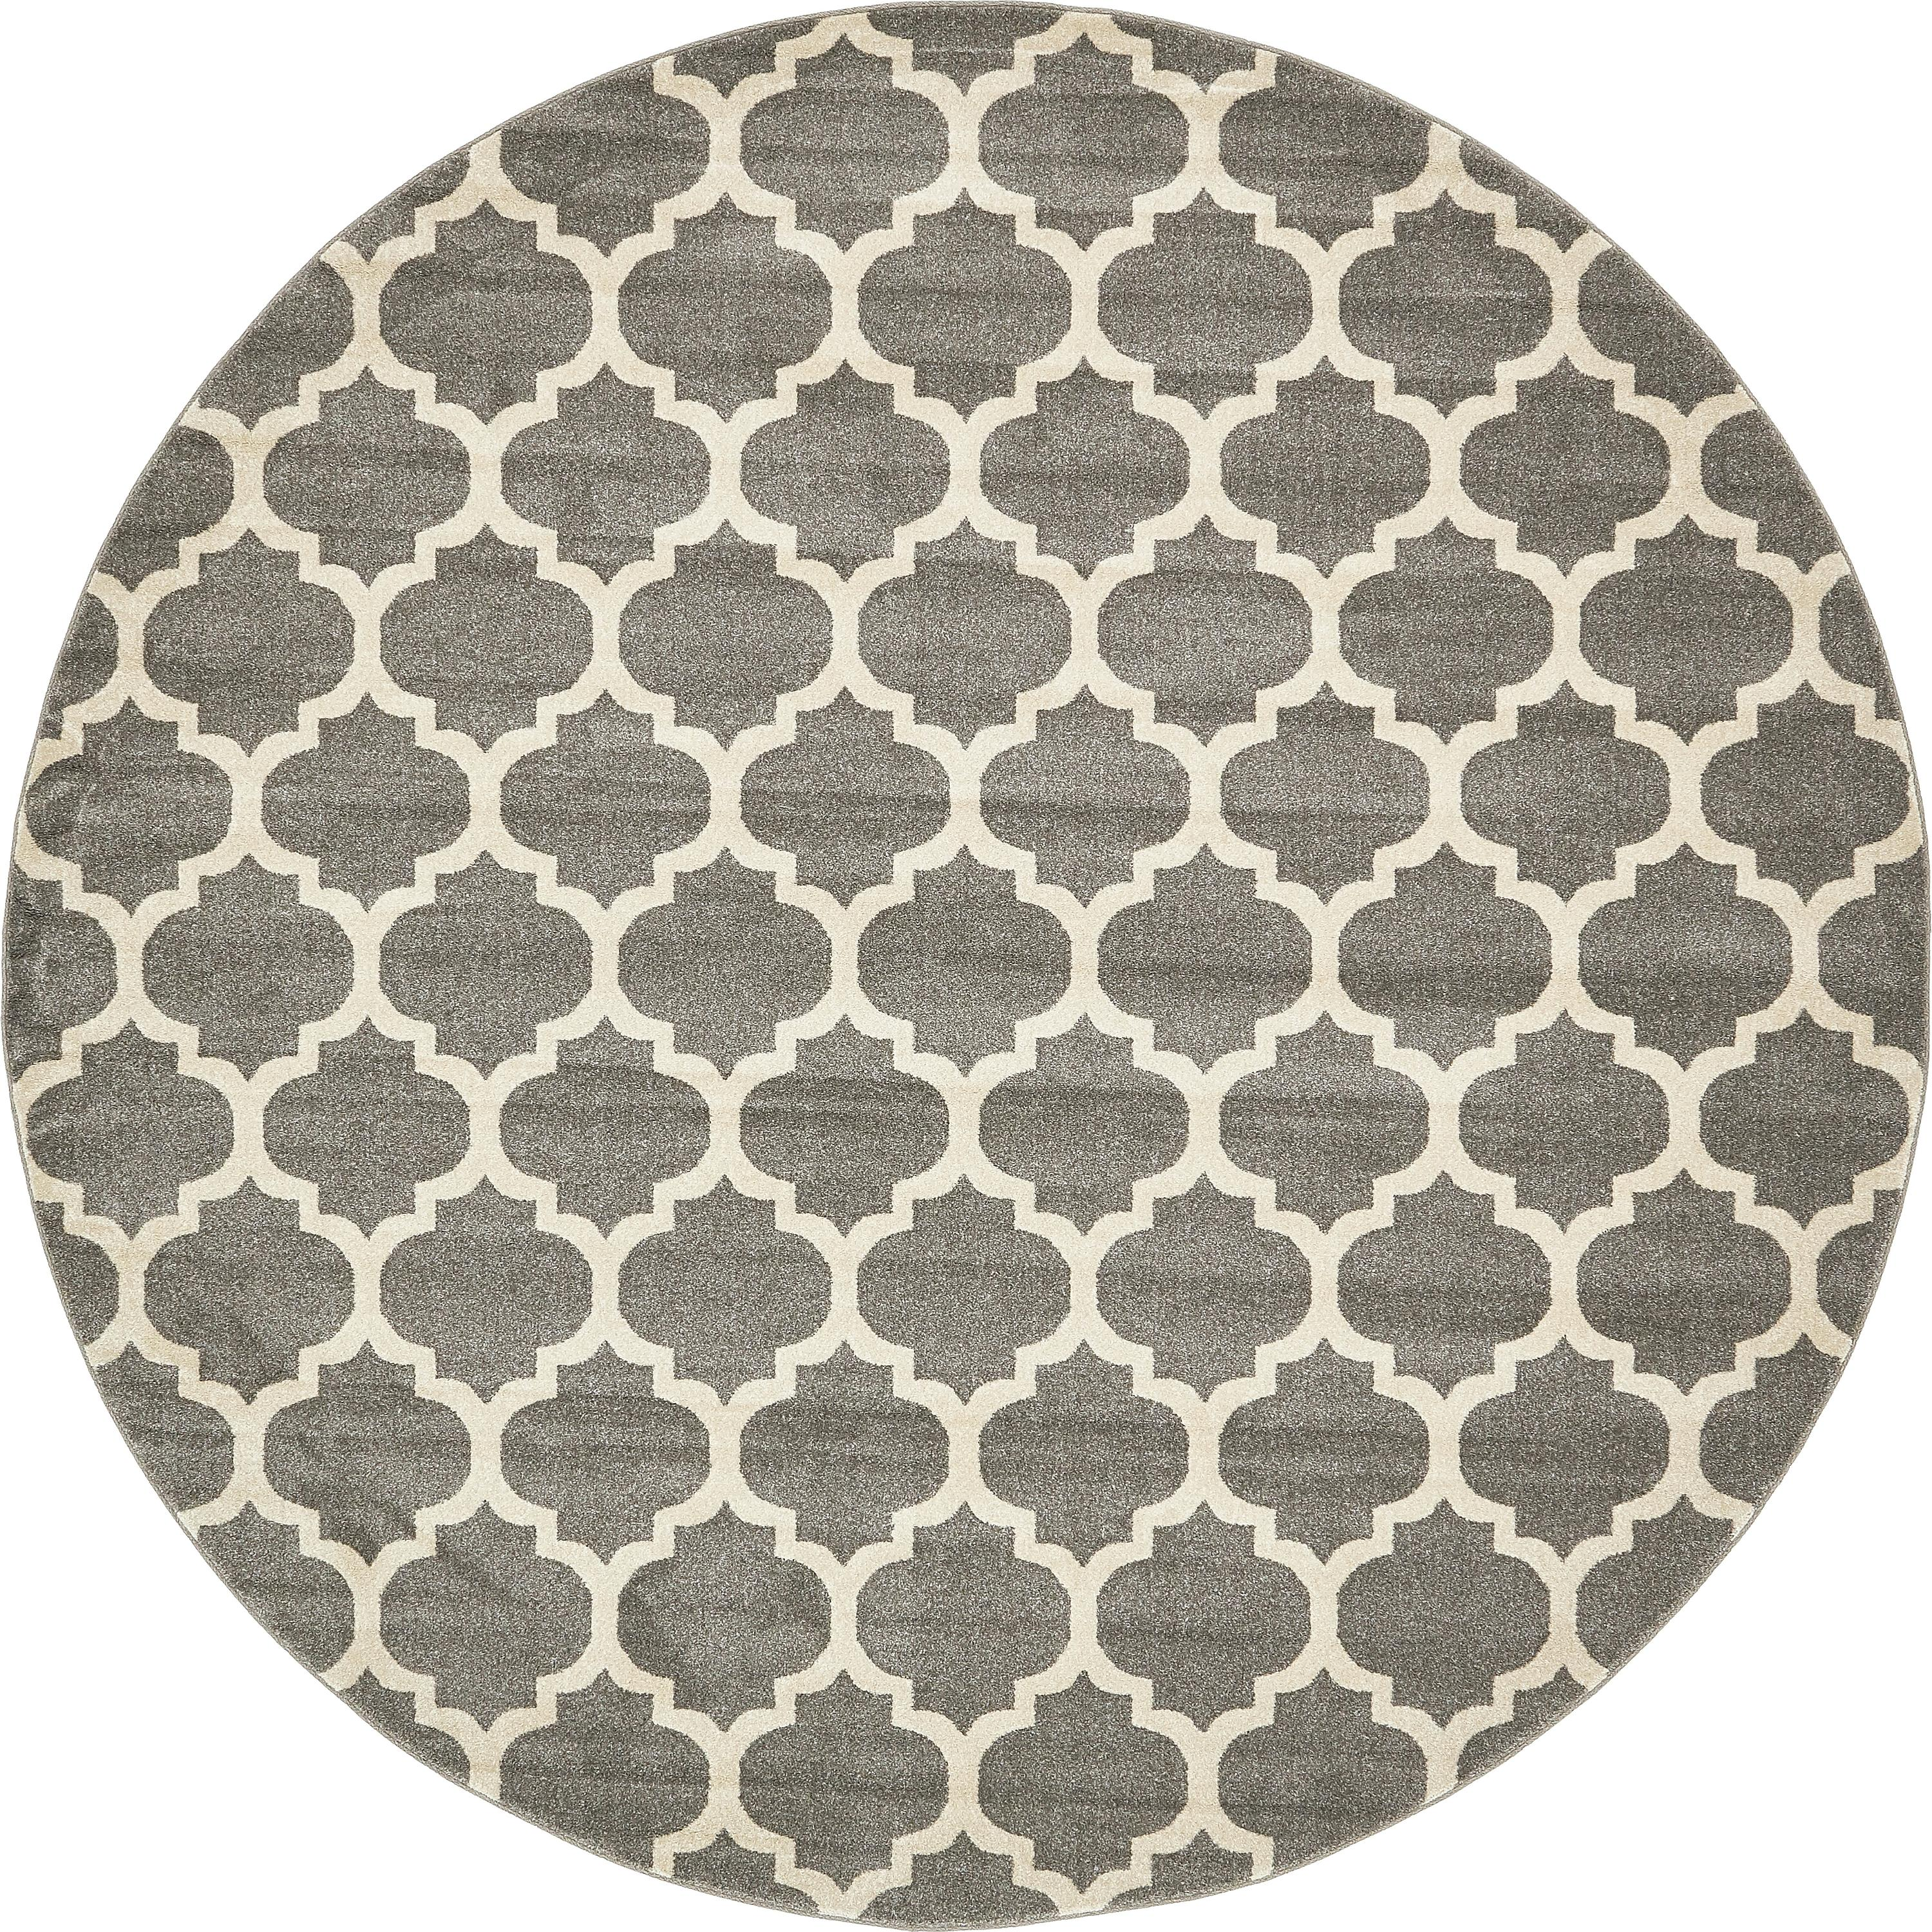 Round Rugs Uk Home Decorating Ideas